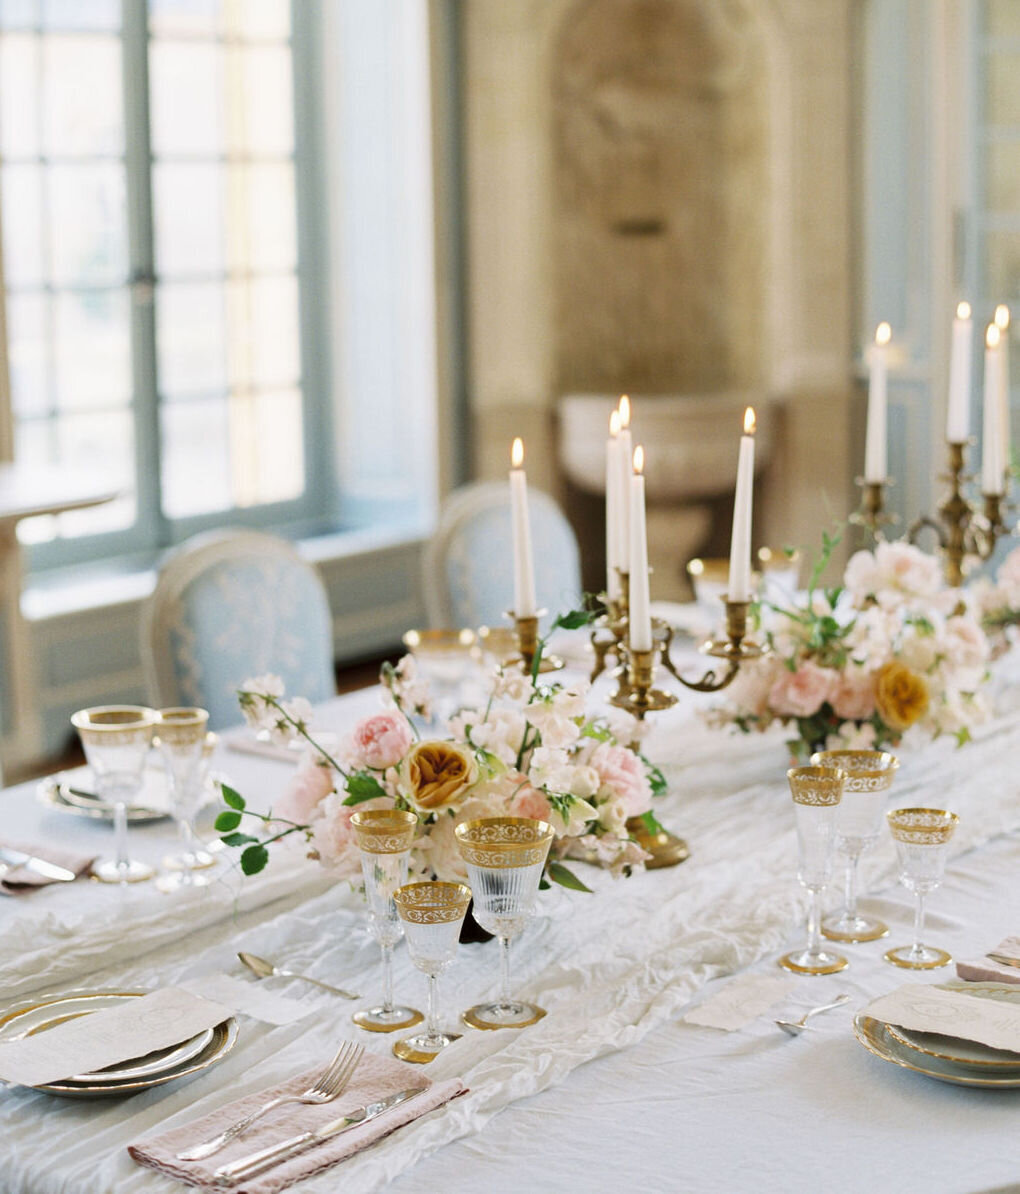 Chateau-de-Villette-wedding-Floraison